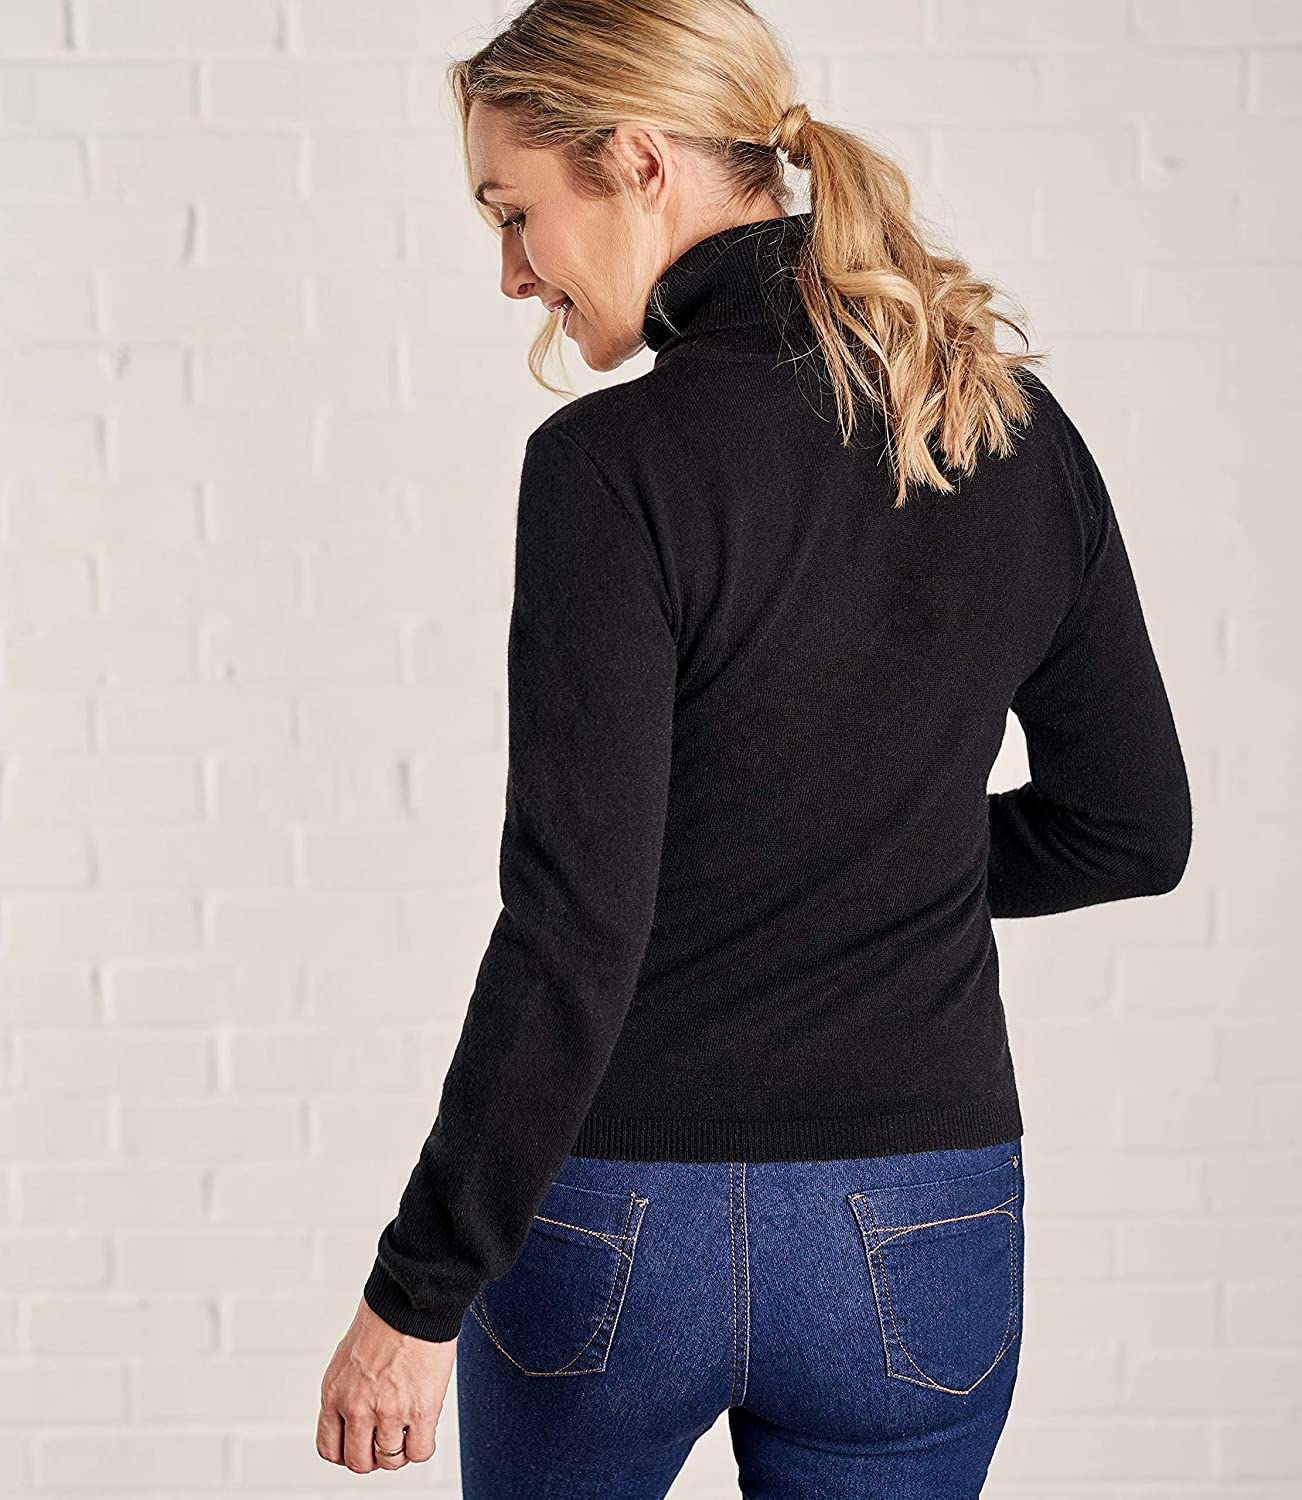 4587a80be3e0 Woolovers Ladies Cashmere and Merino Fitted Polo Neck Knitted Sweater   Amazon.co.uk  Clothing